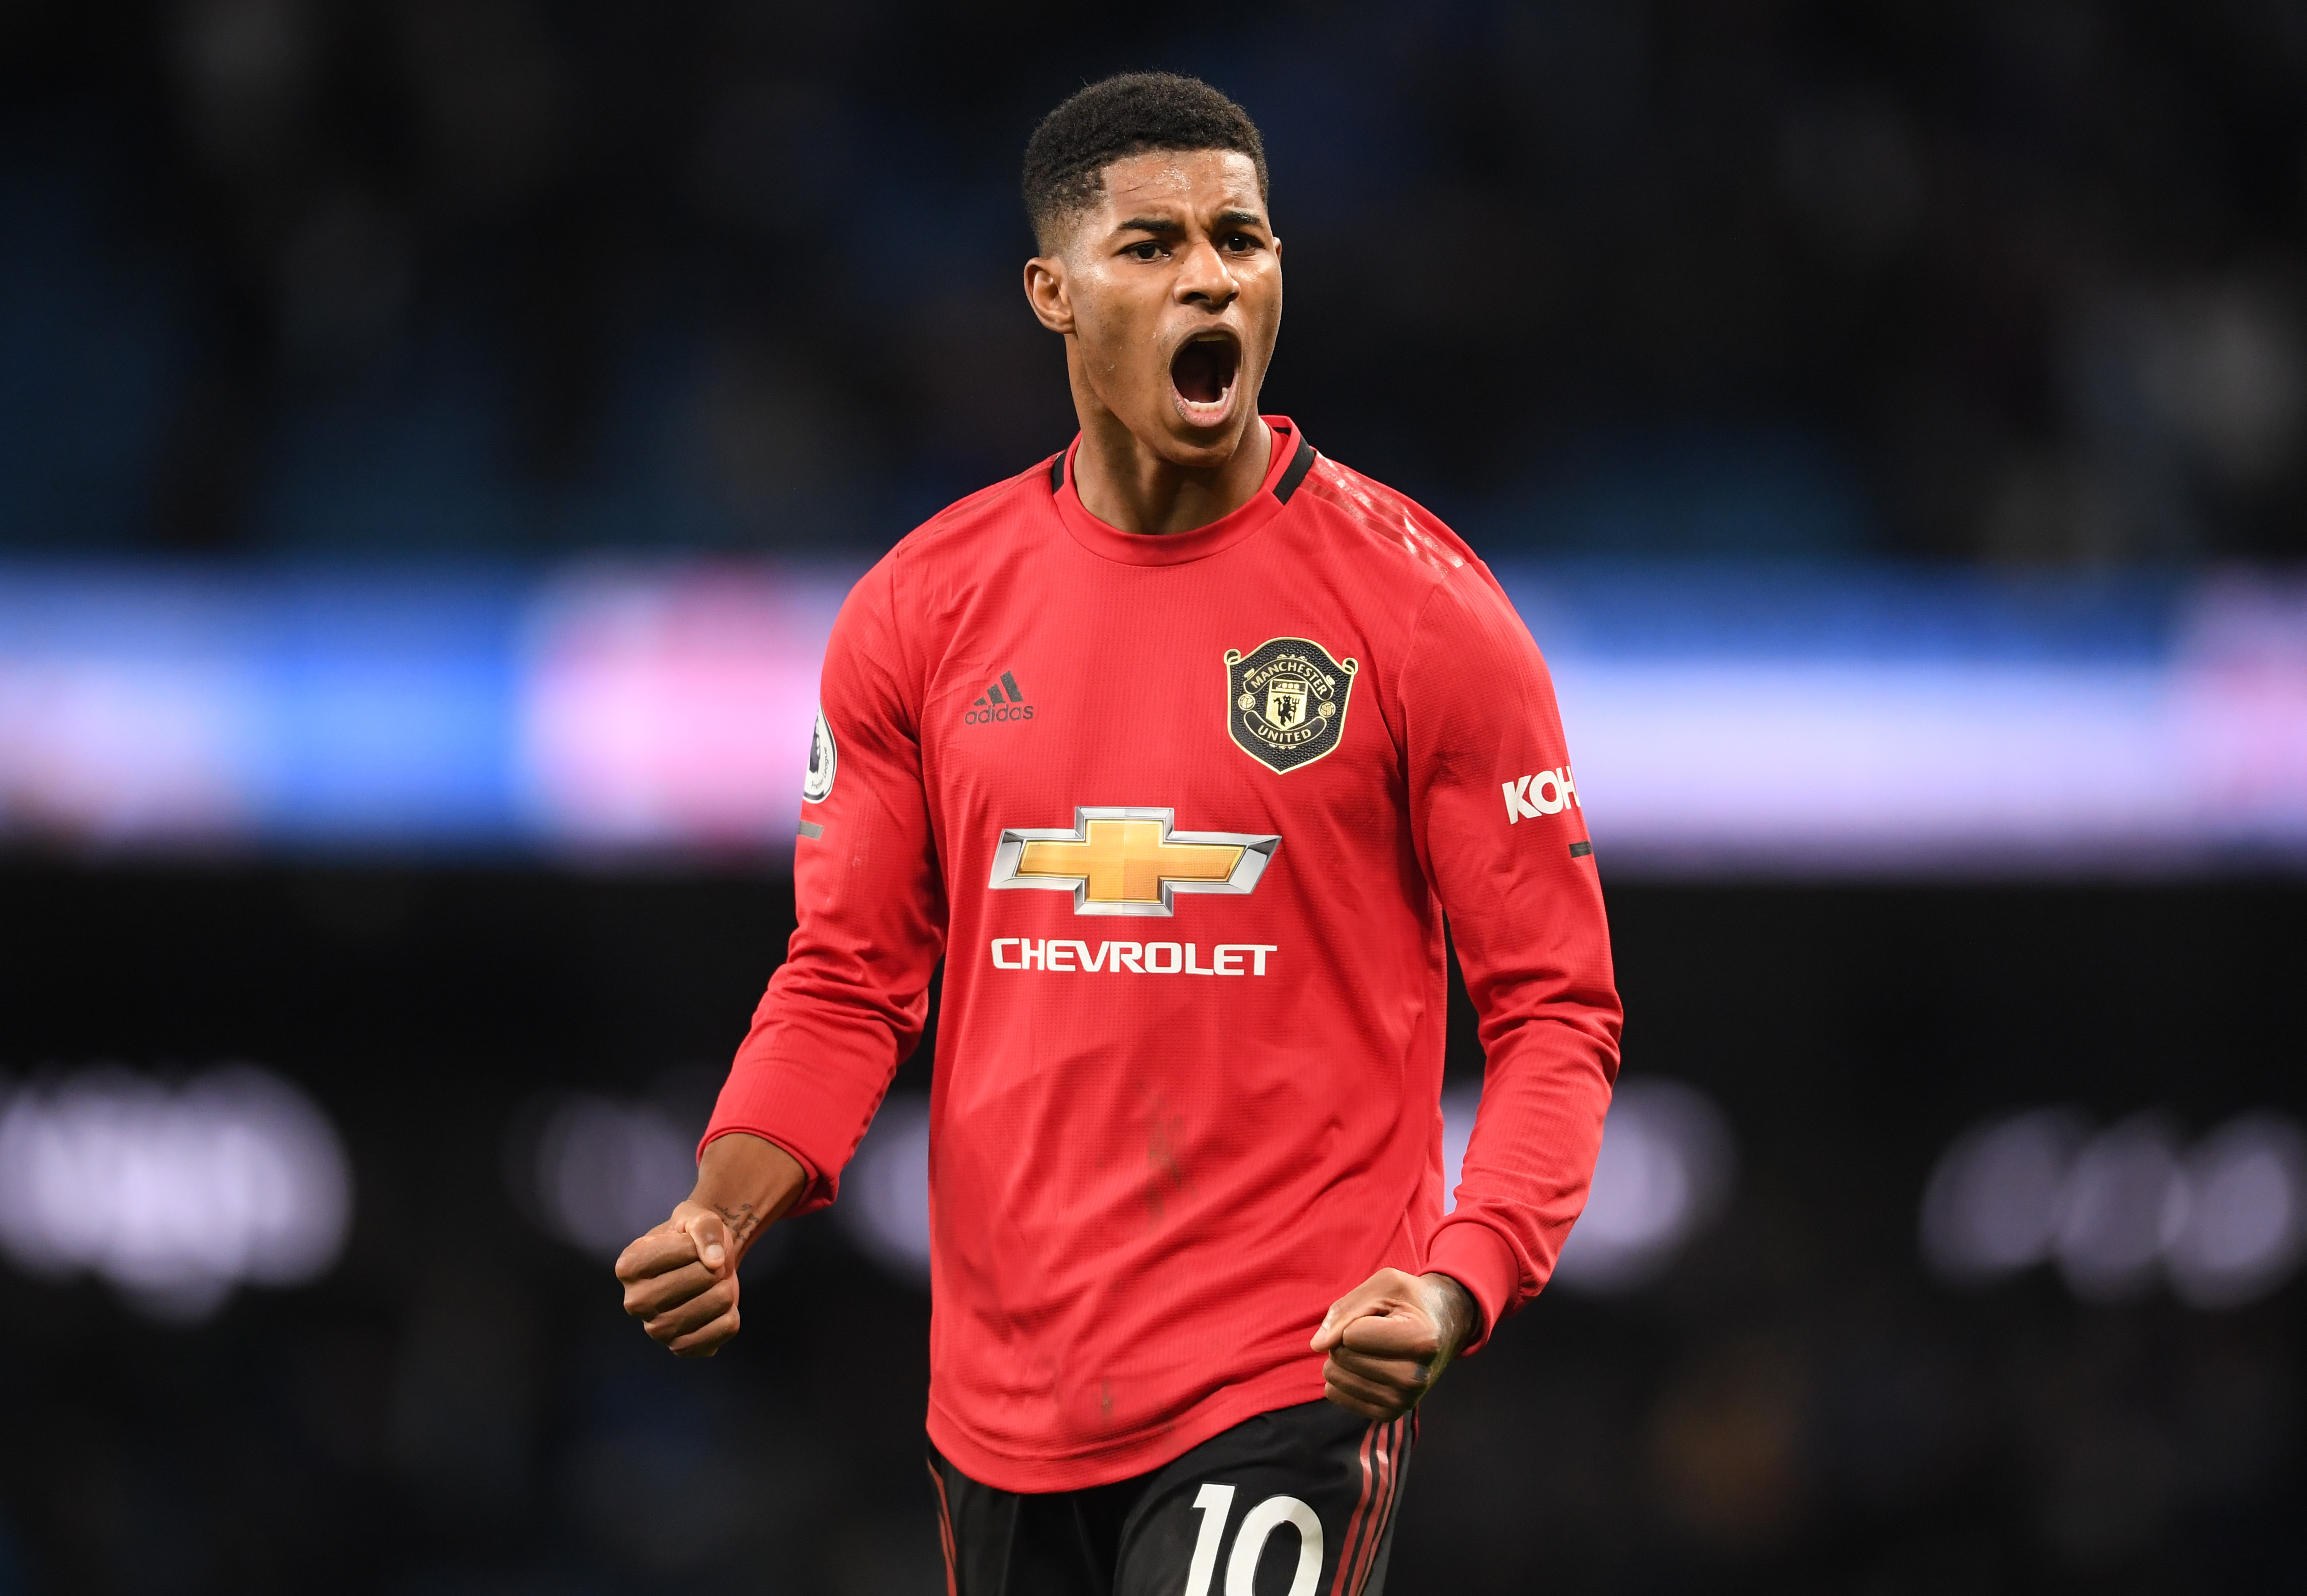 Marcus Rashford The 22 Year Old Who Caused The Government To Change Policy Cnn Video